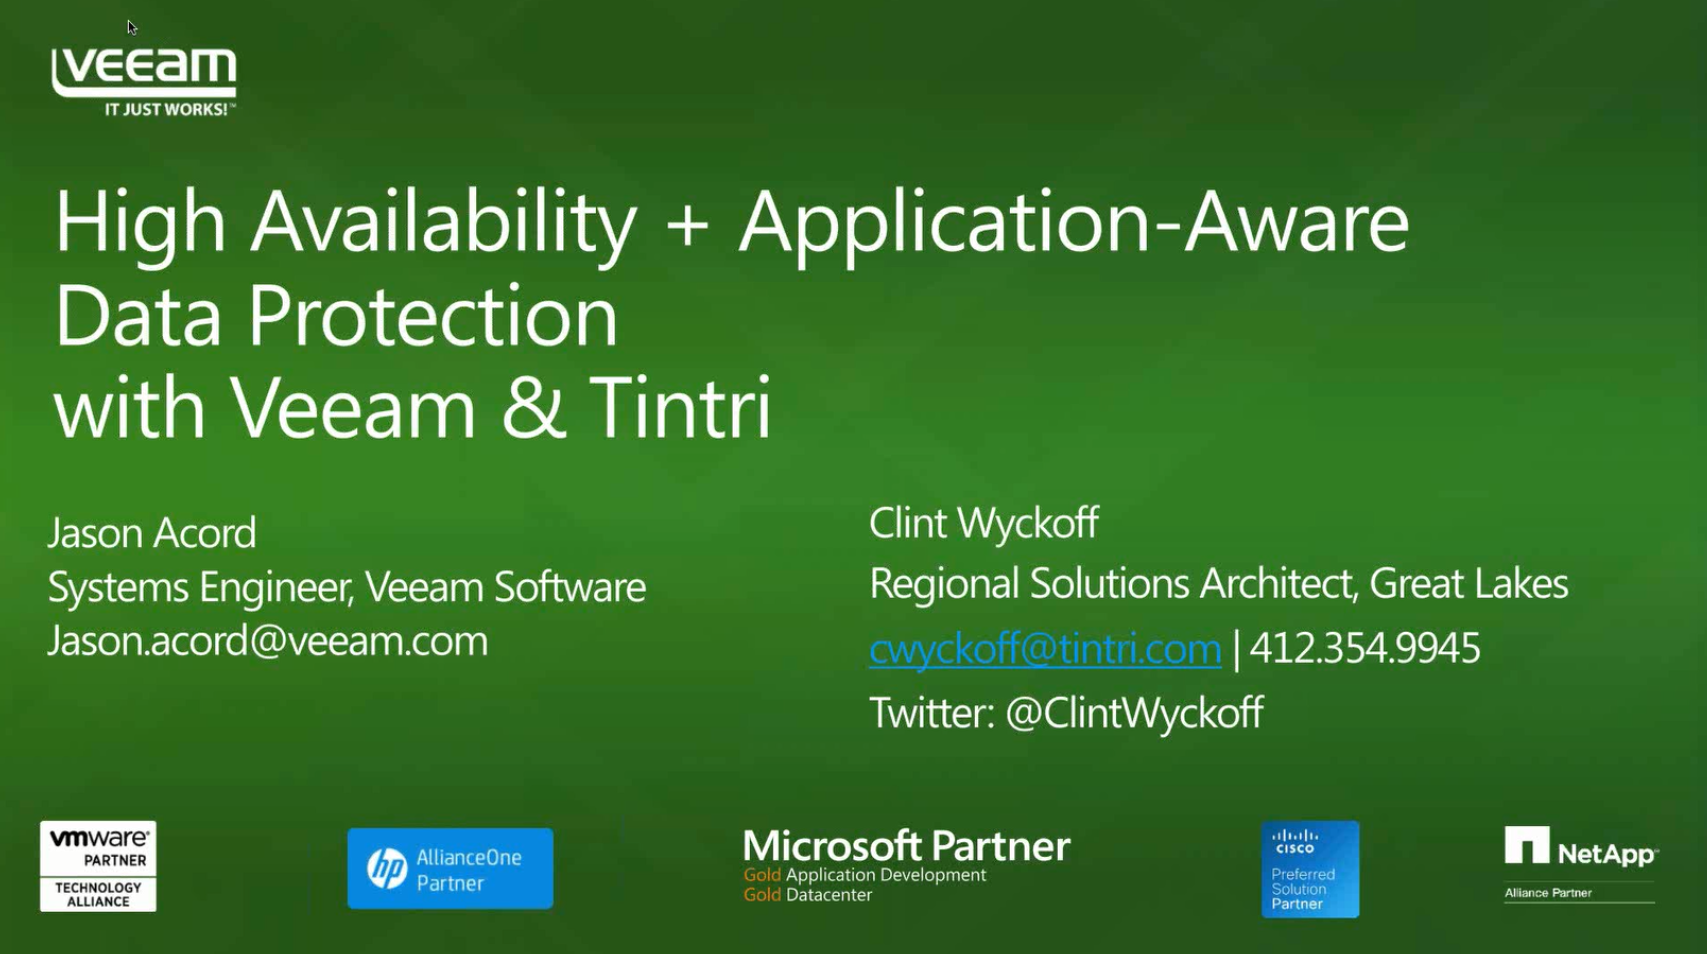 High Availability + Application-Aware Data Protection with Veeam & Tintri